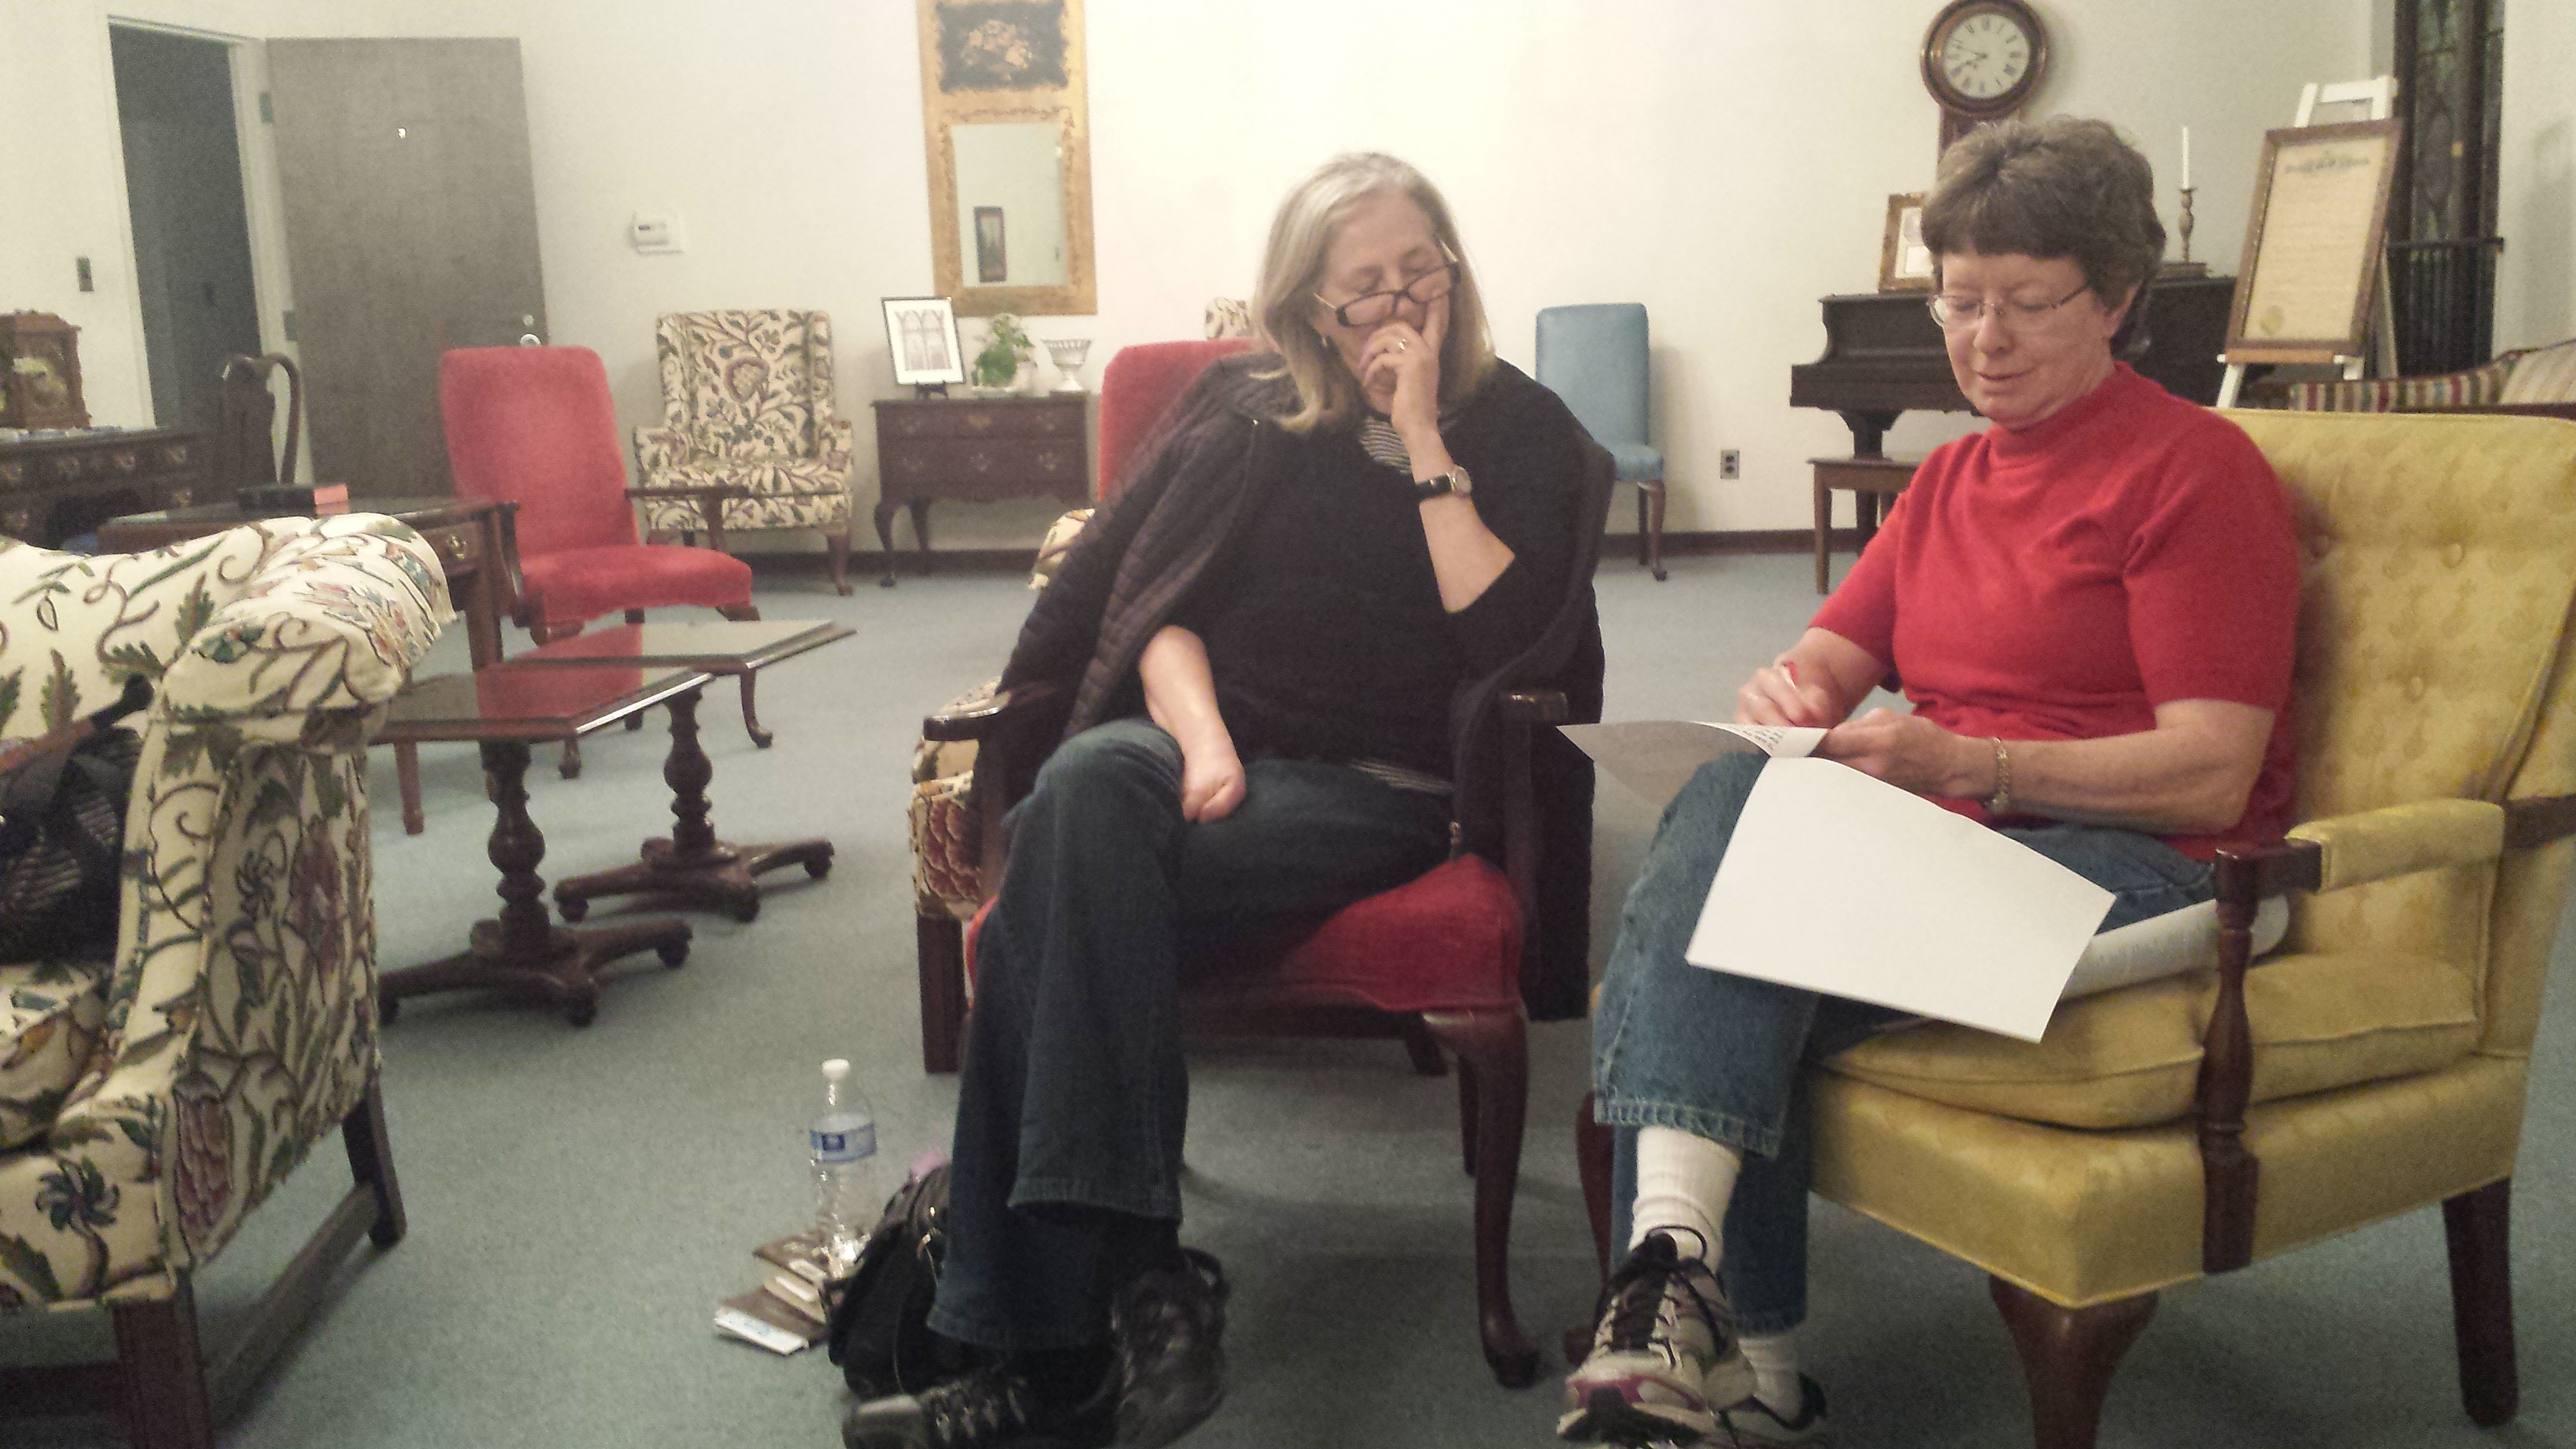 Members met in the lounge of the United Church for the March 2015 meeting